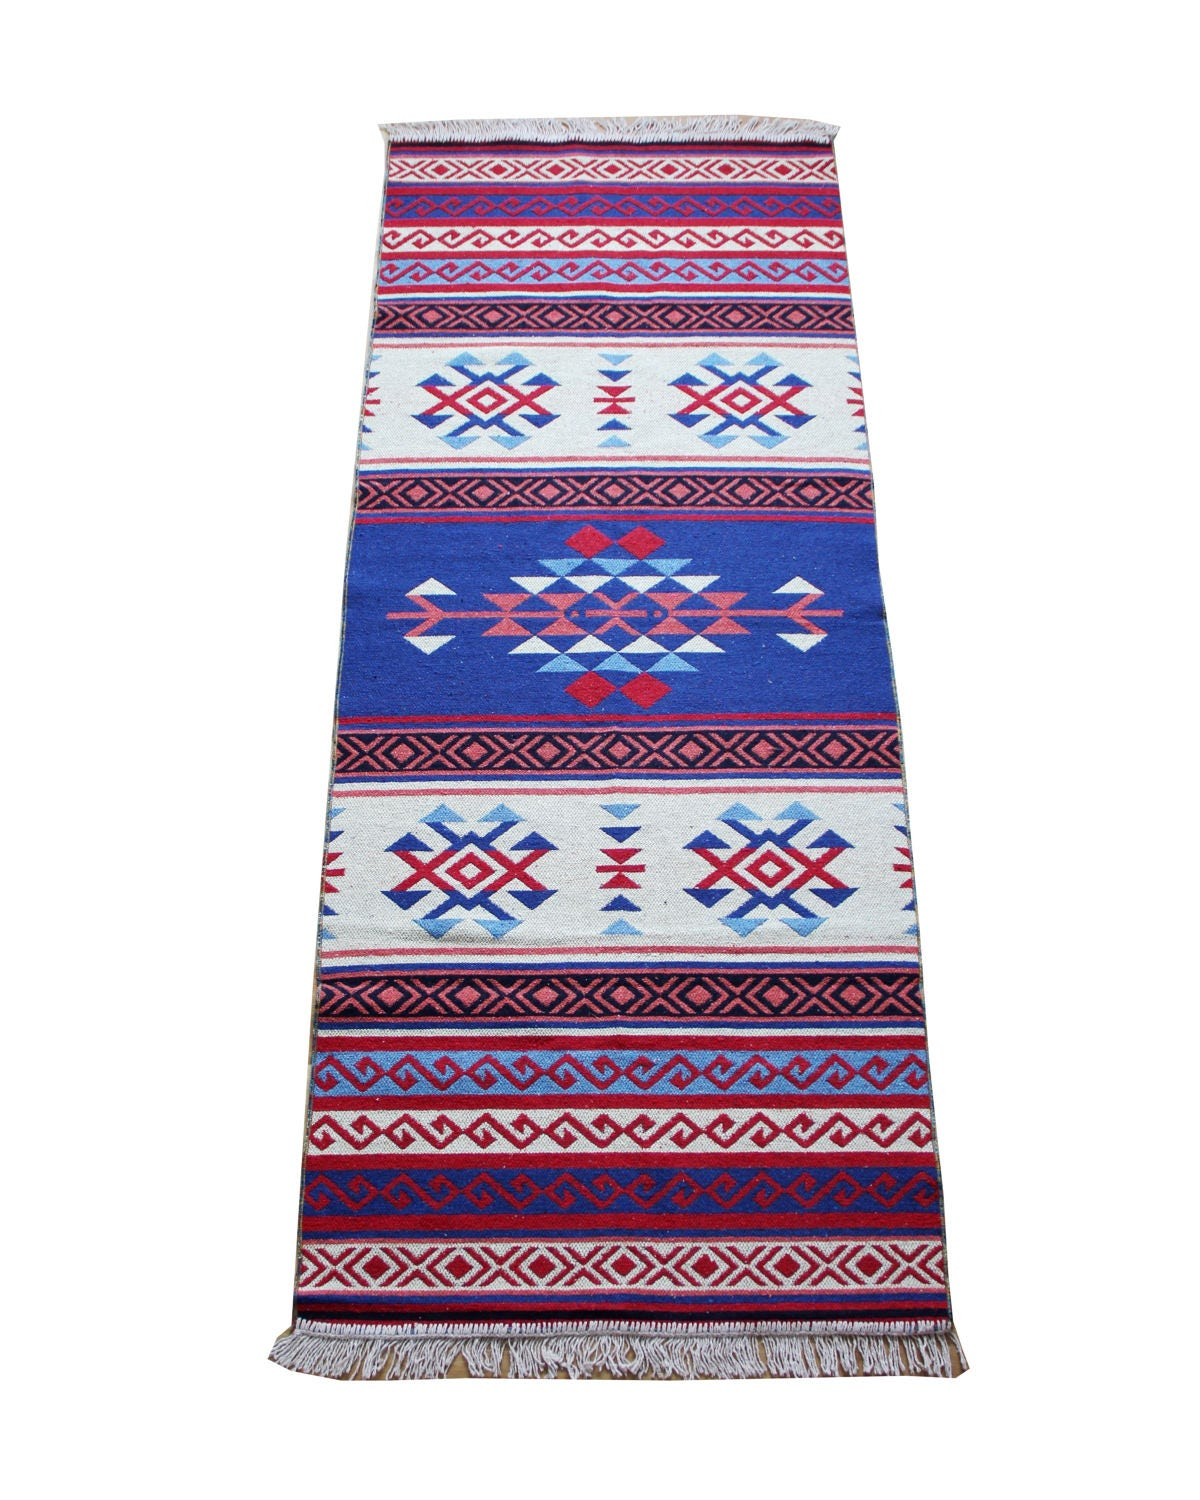 Kilim Runner Rug New Reversible Turkish Kilim Runner Rug